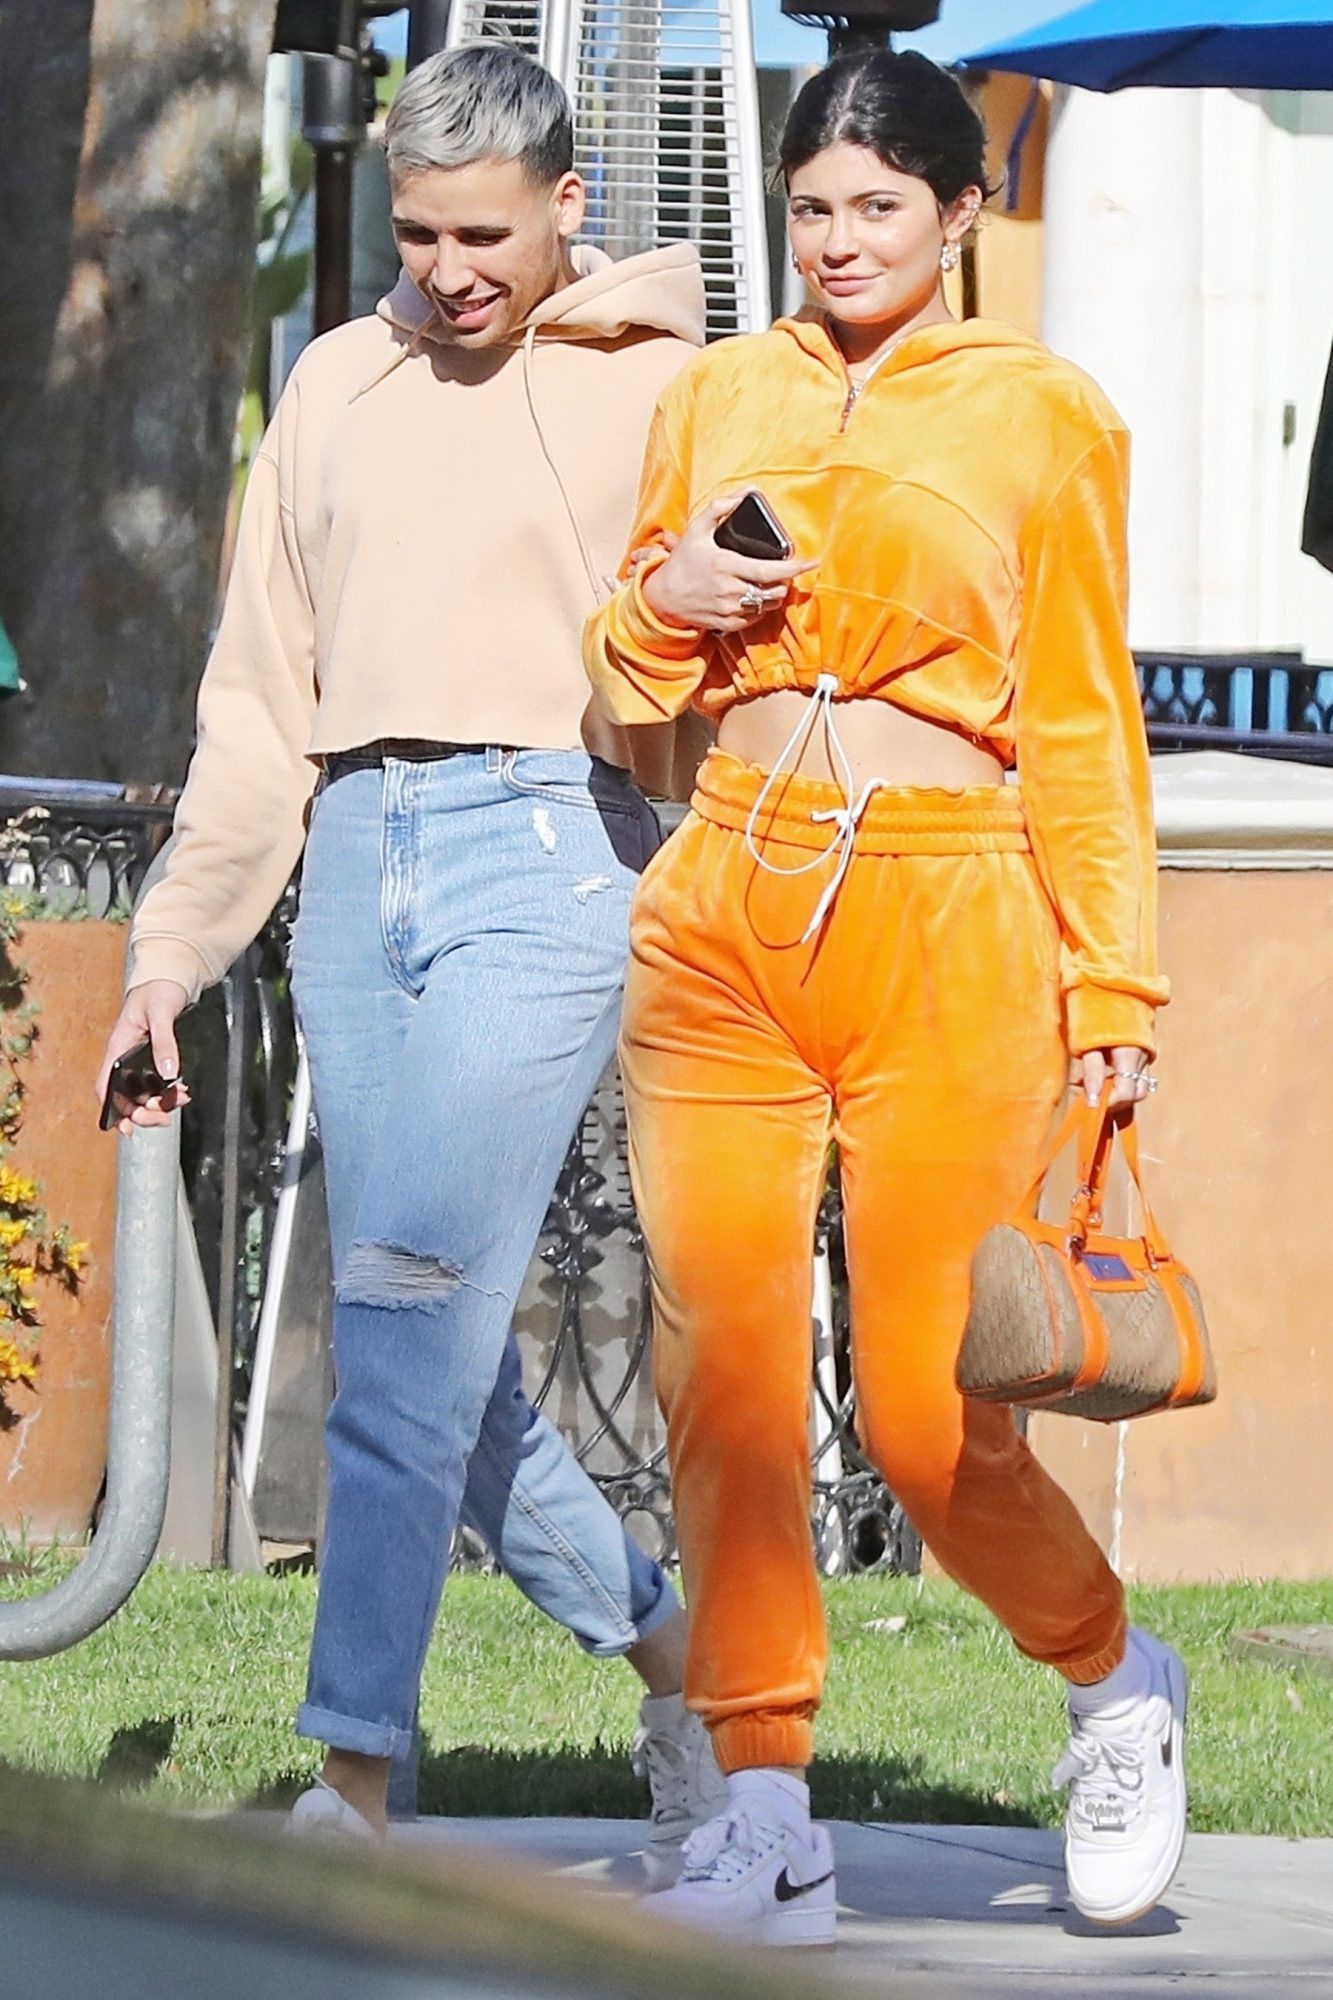 *EXCLUSIVE* Kylie Jenner has lunch with a friend at Sugar Fish